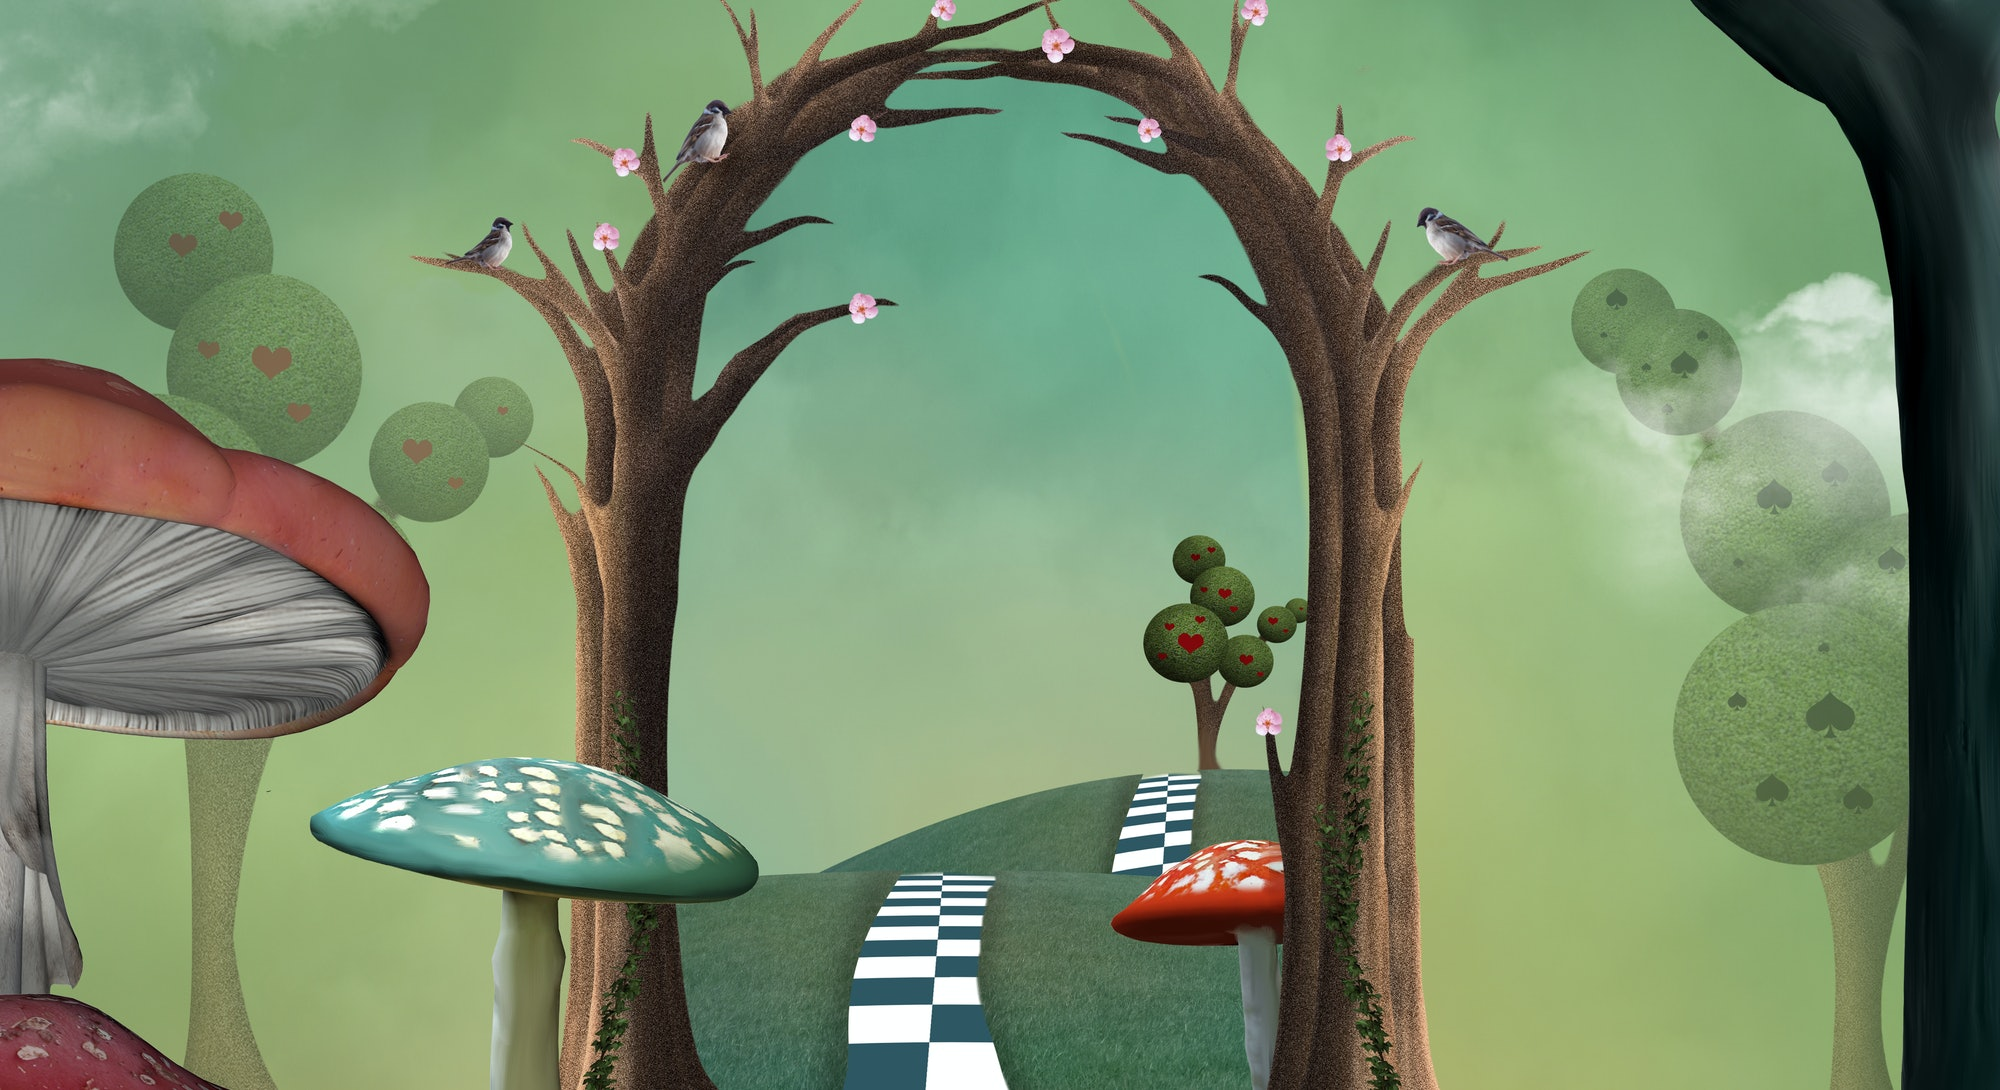 Wonderland surreal landscape with a magic passage and a cheshire cat watching the scene on a tree branch - 3D illustration.